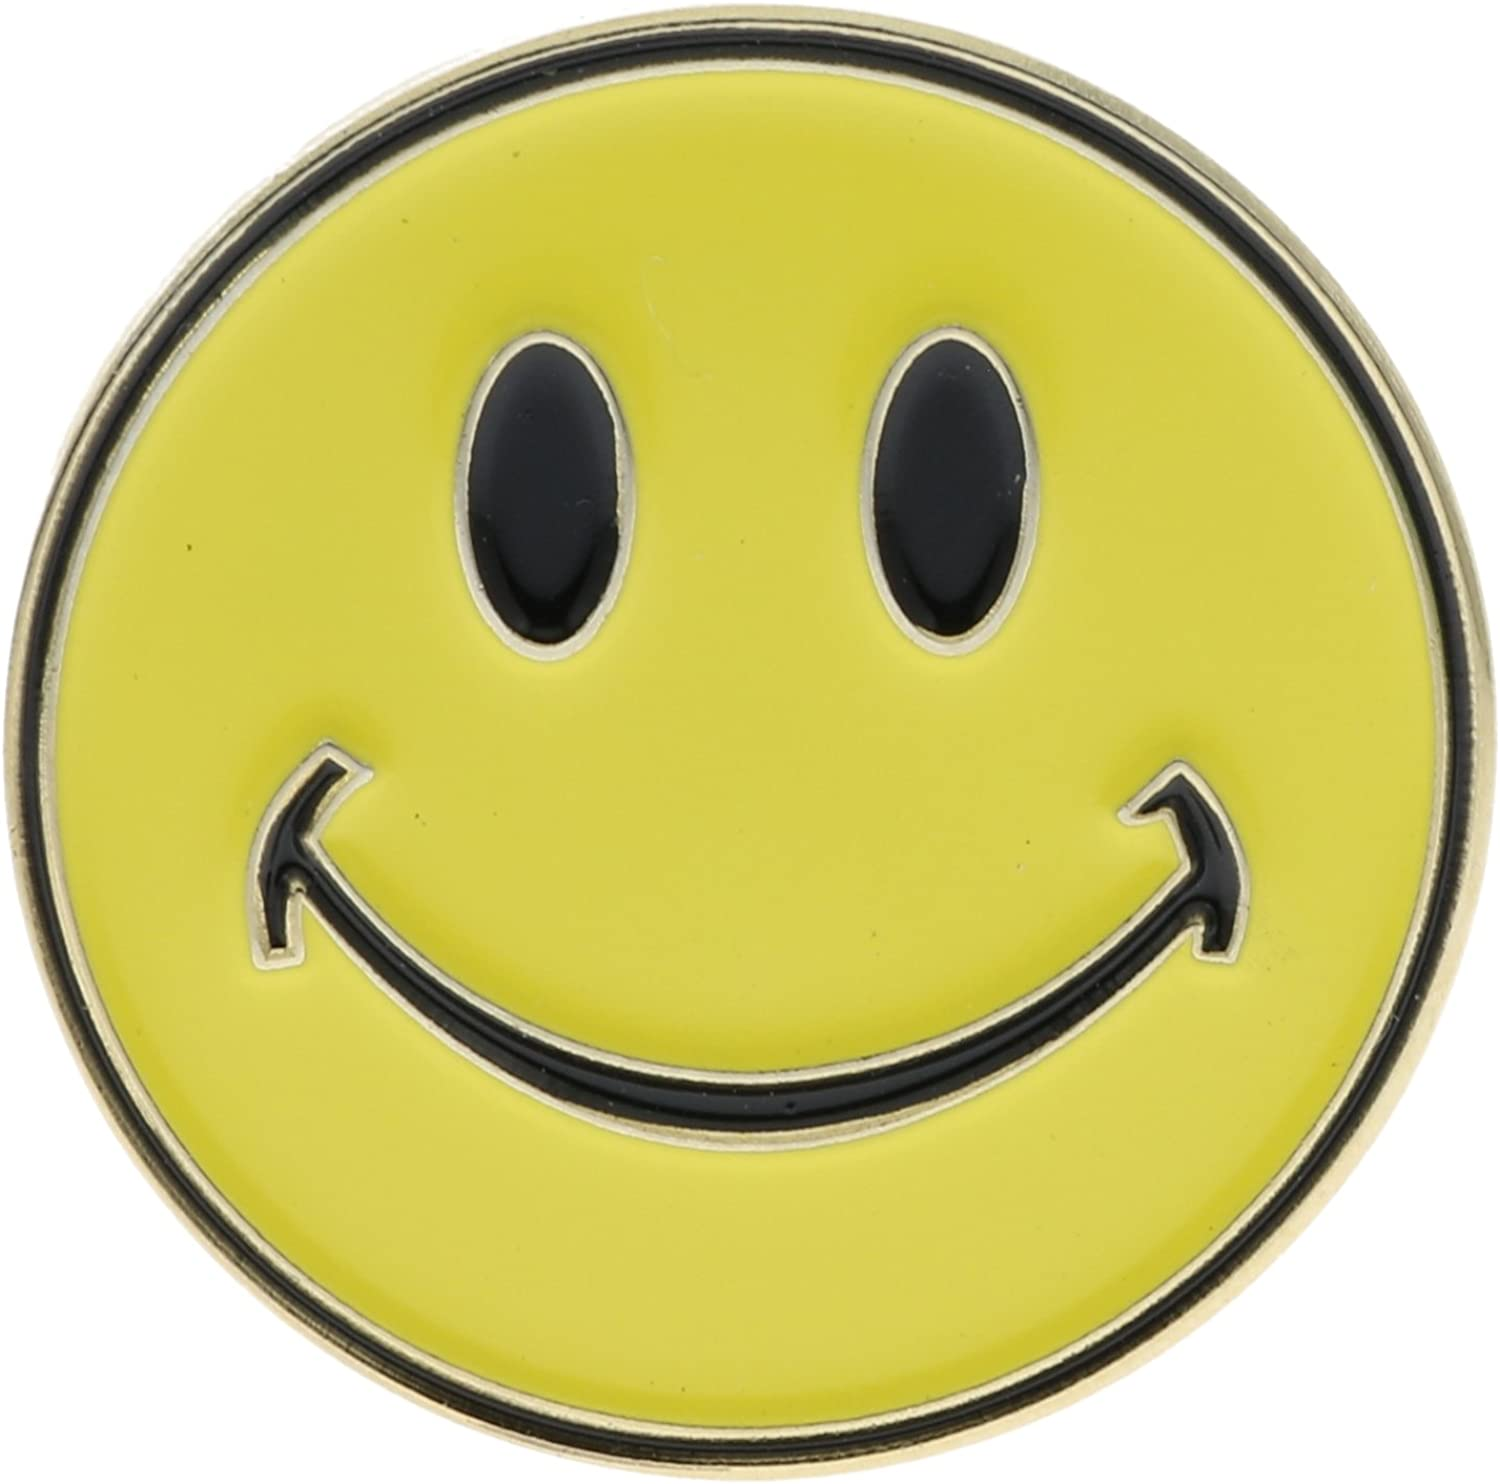 Yellow Hat or Lapel Pin AVAP0136 Sujak Military Items Smiley Face